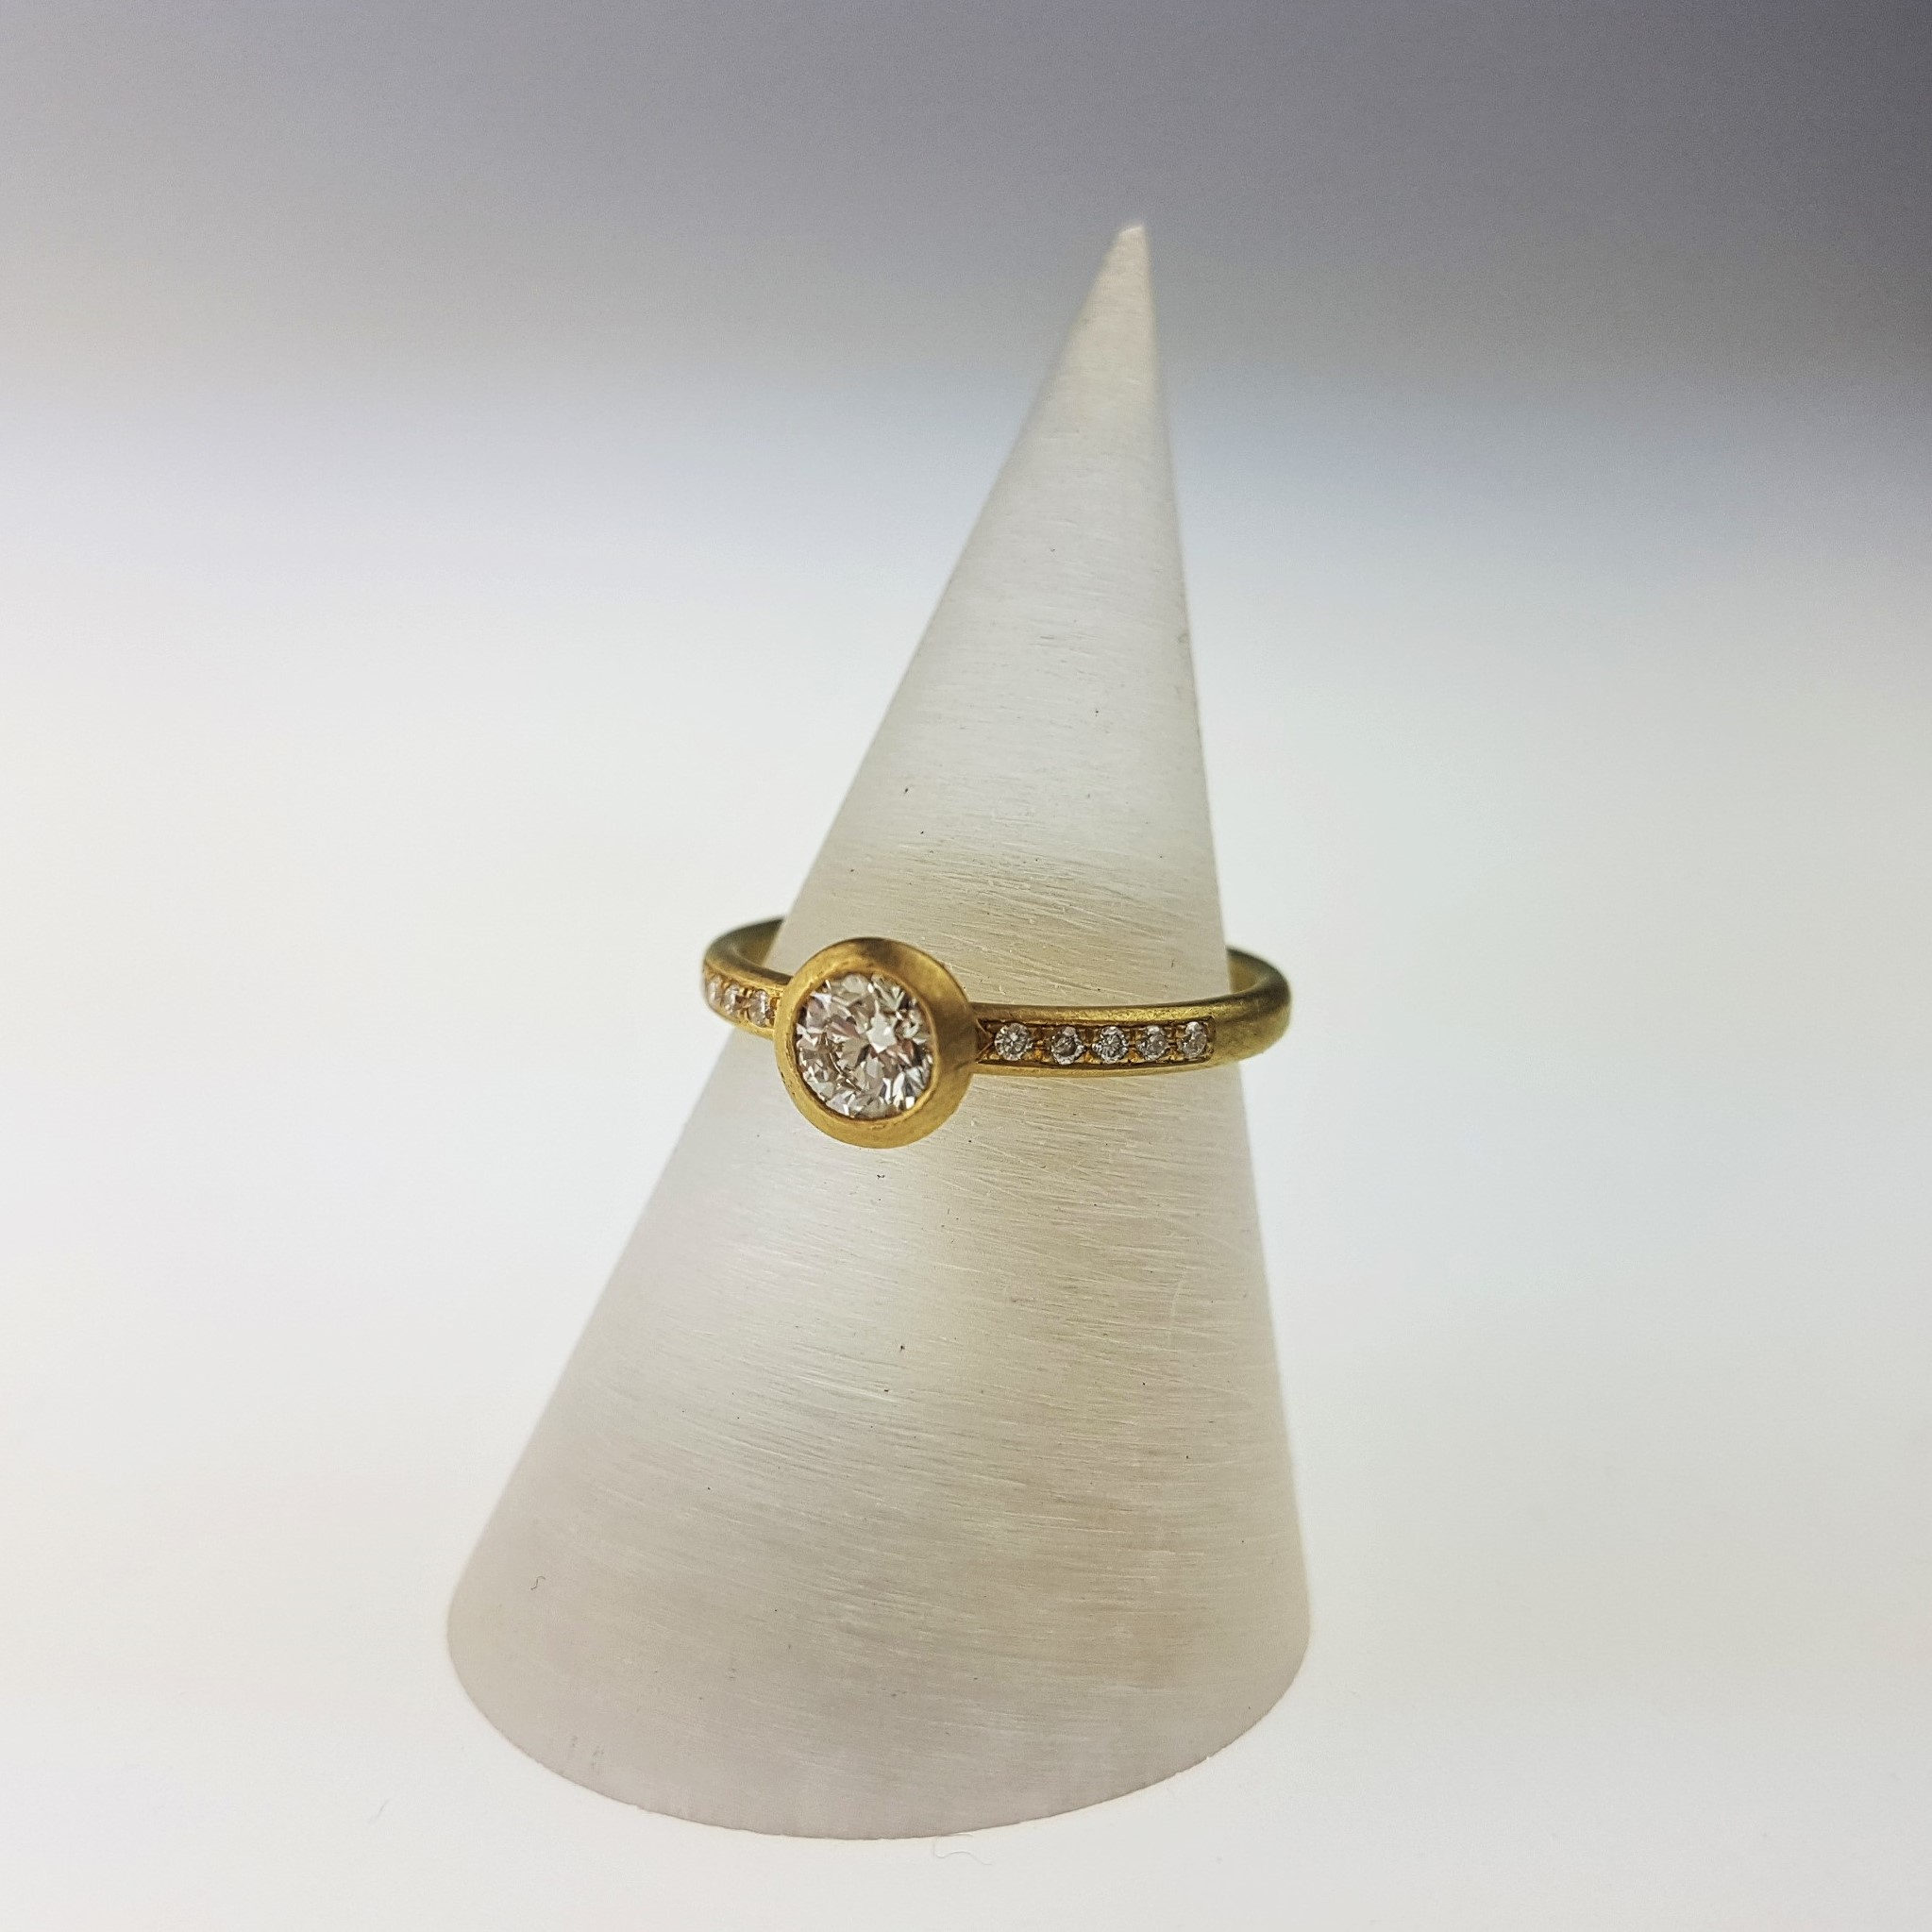 Classic Elegance - This white diamond ring with diamond set shoulders is by Natalie Harris in 18ct yellow gold with a matt finish £2550.